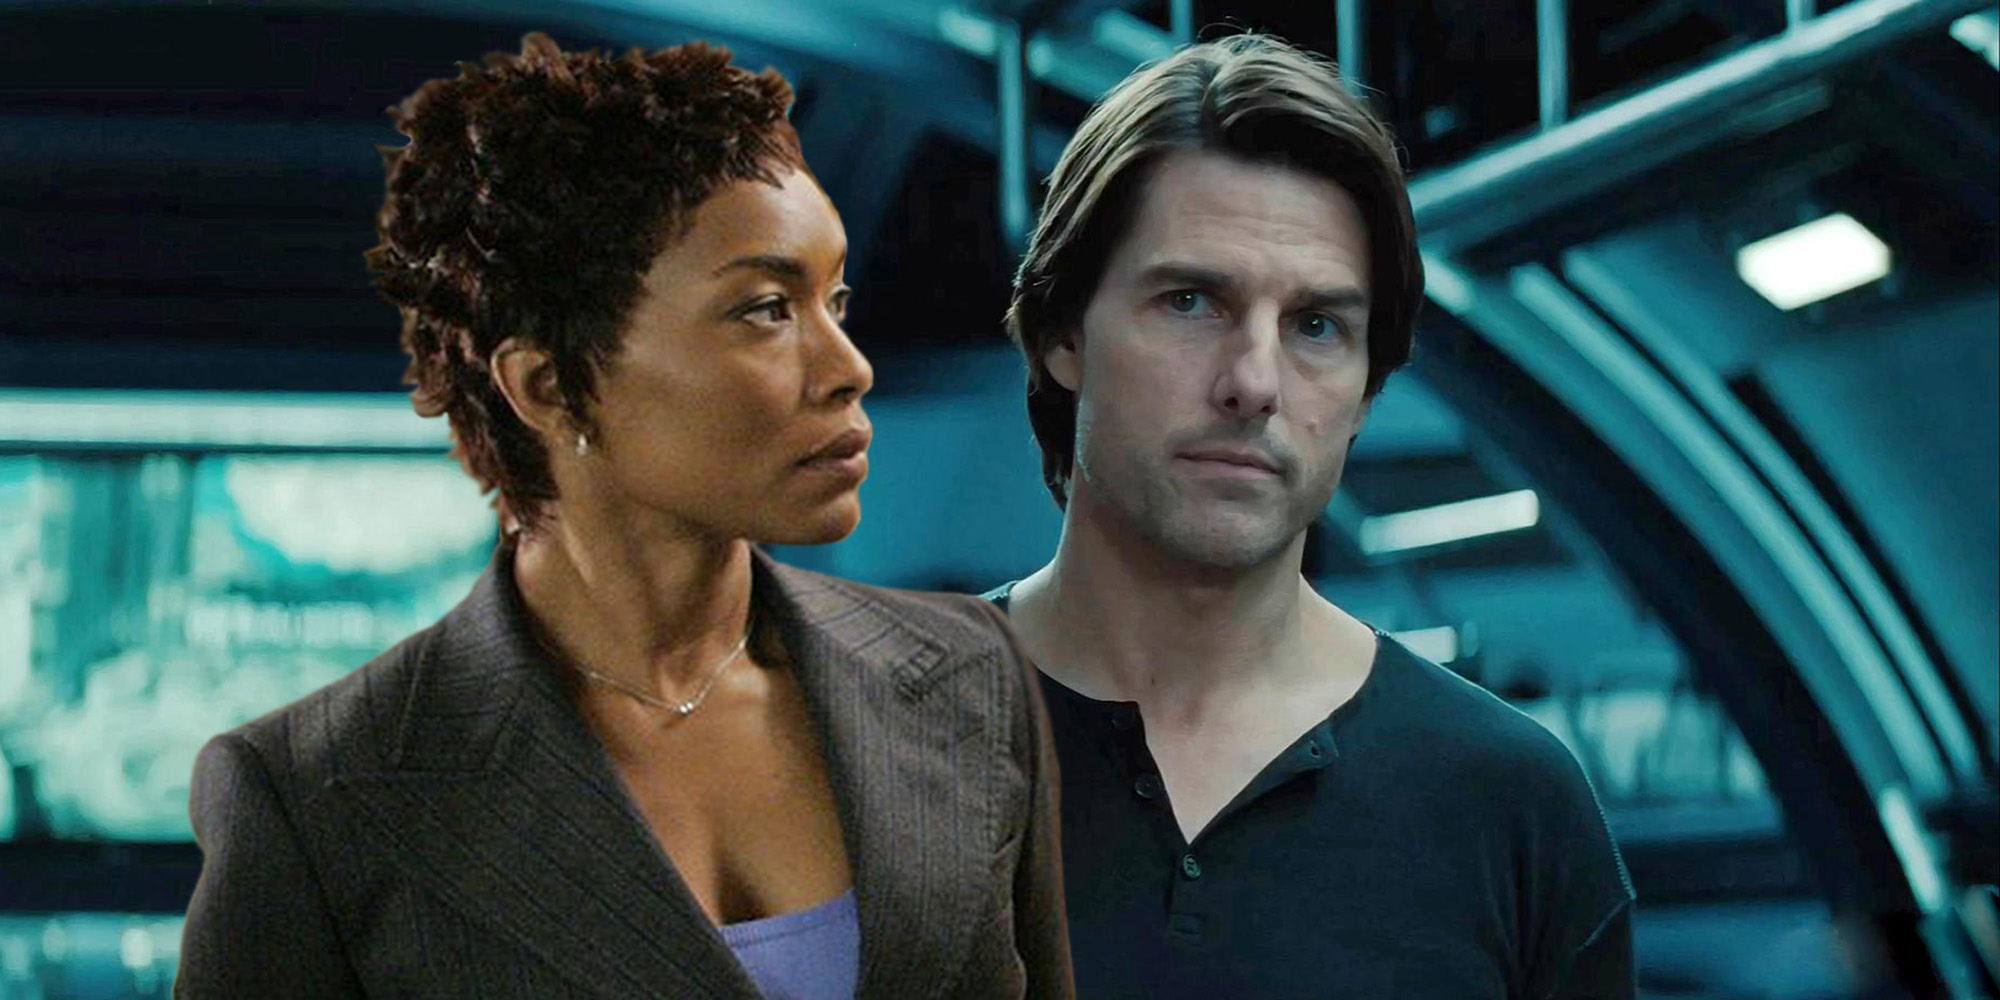 Tom Cruise in Mission: Impossible 4 and Angela Bassett